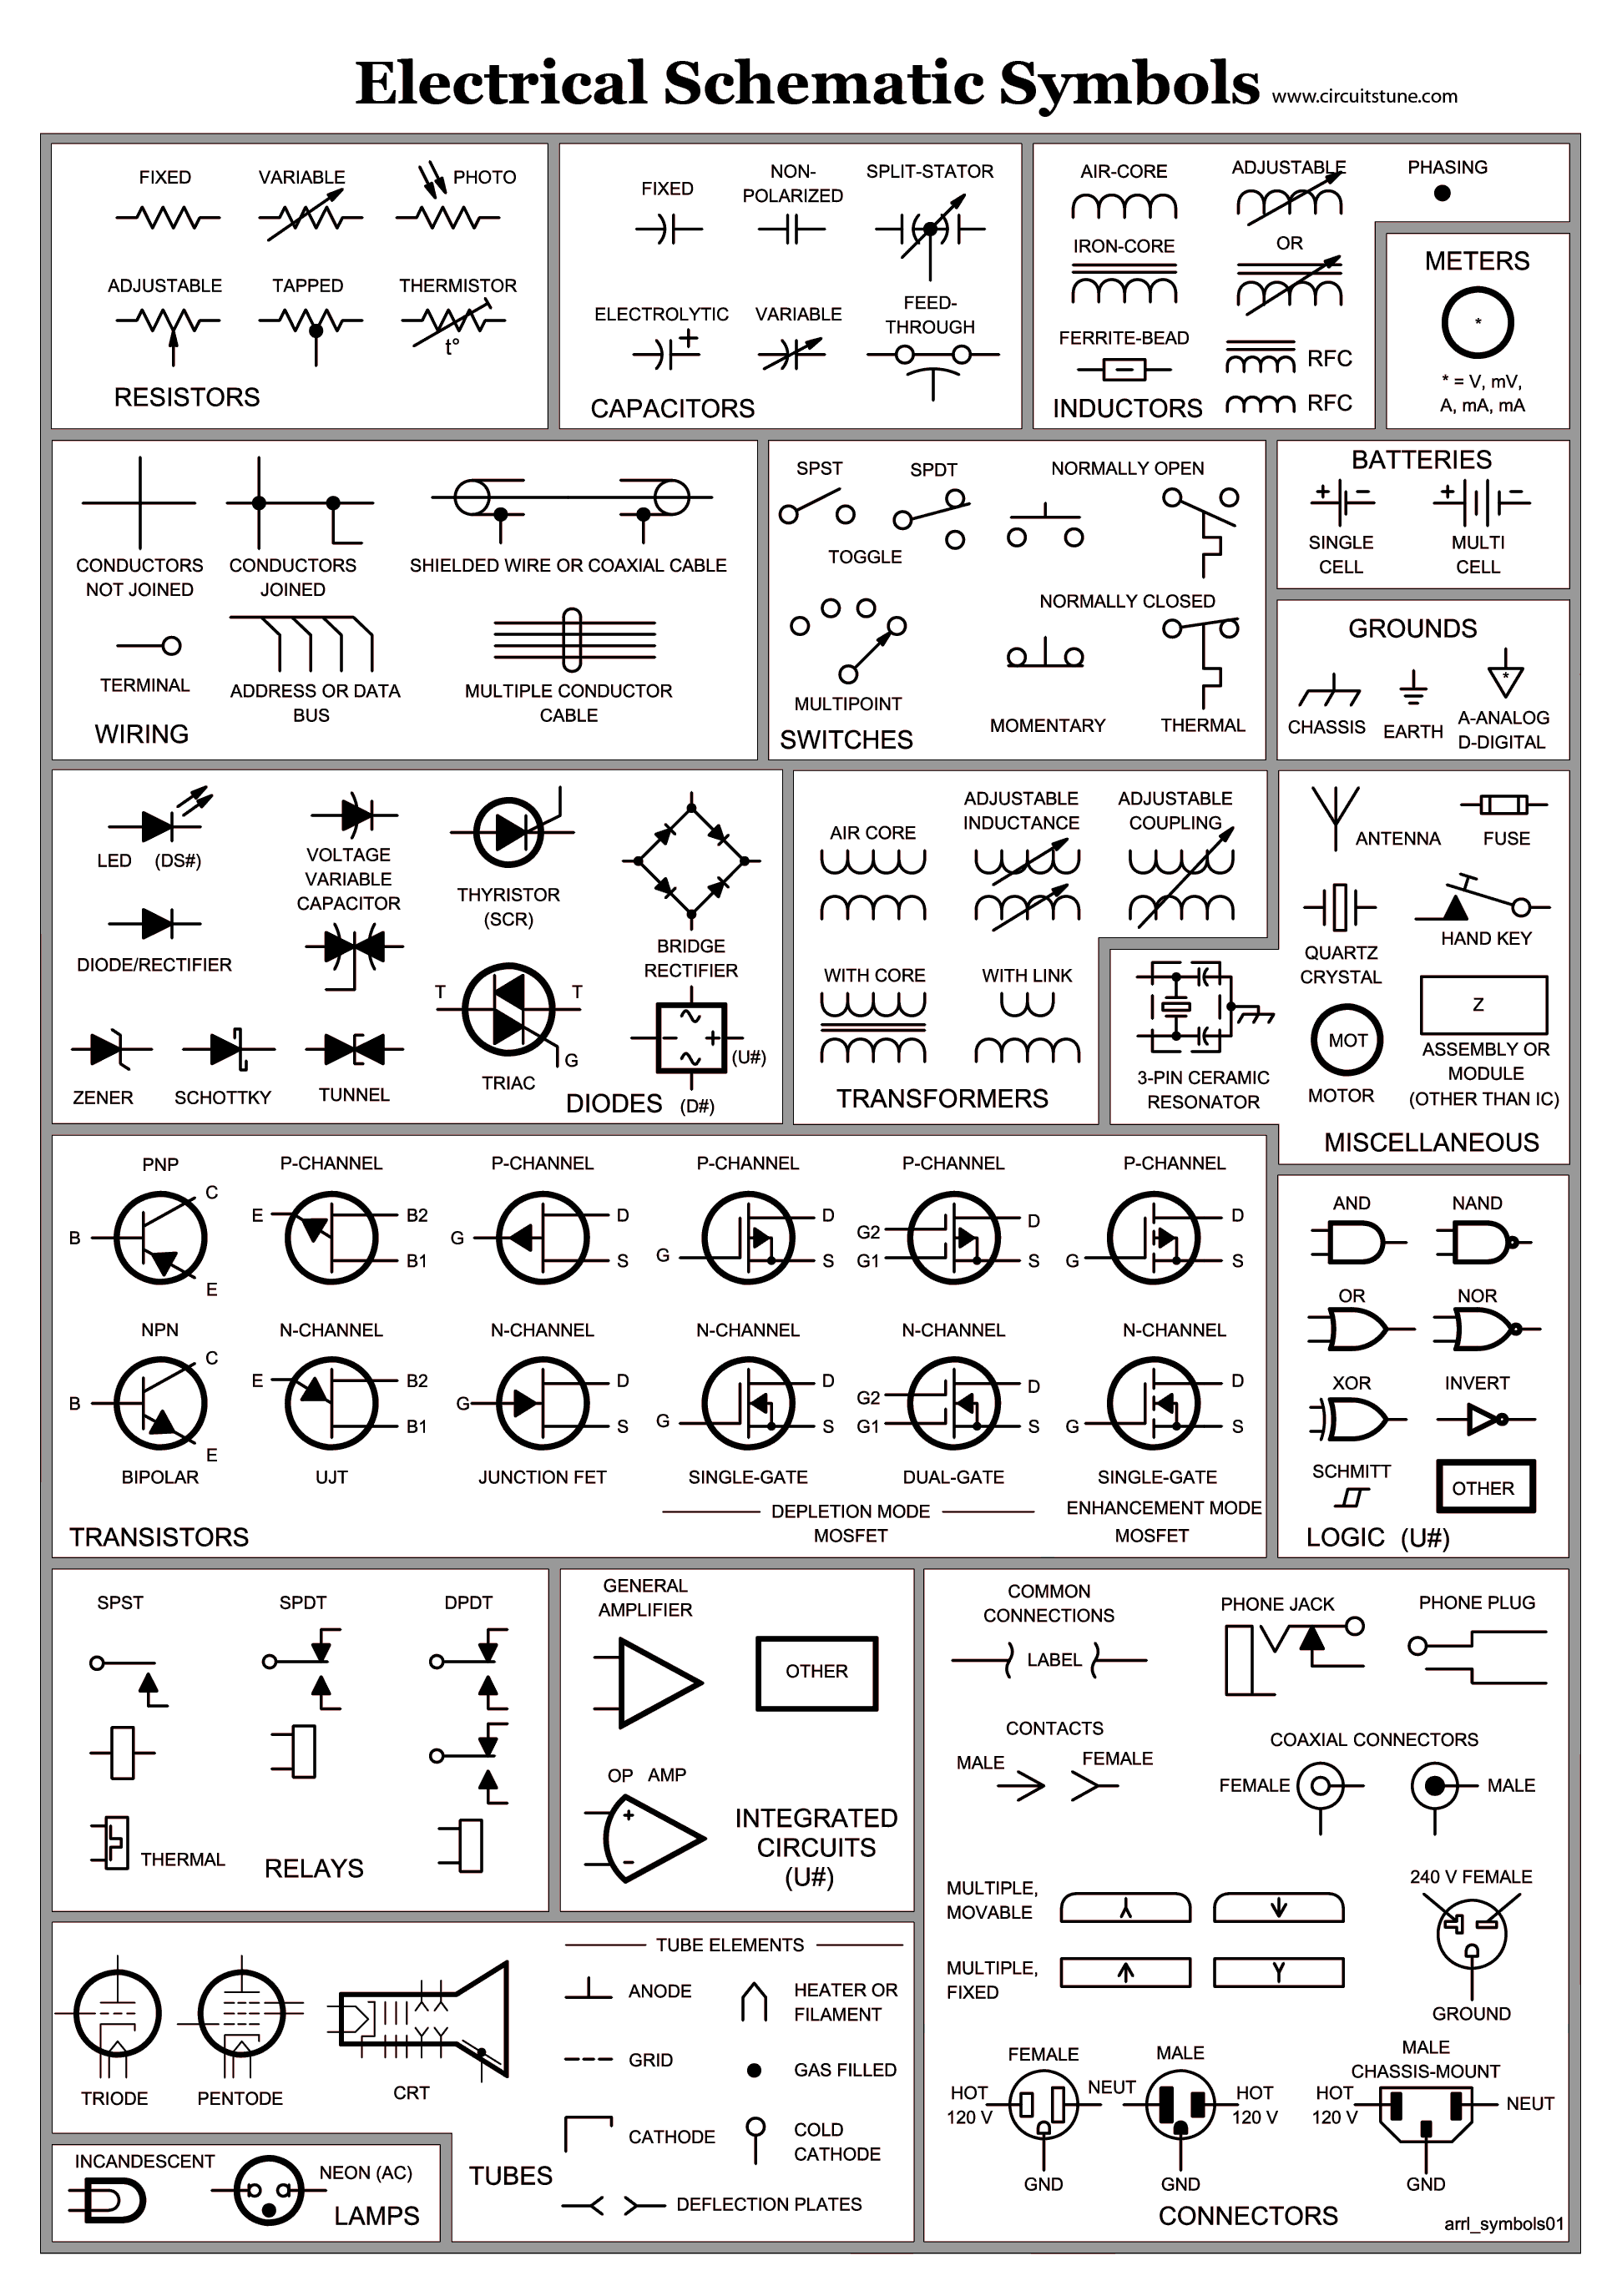 image electrical schematic symbols png bmet wiki fandom powered by wikia